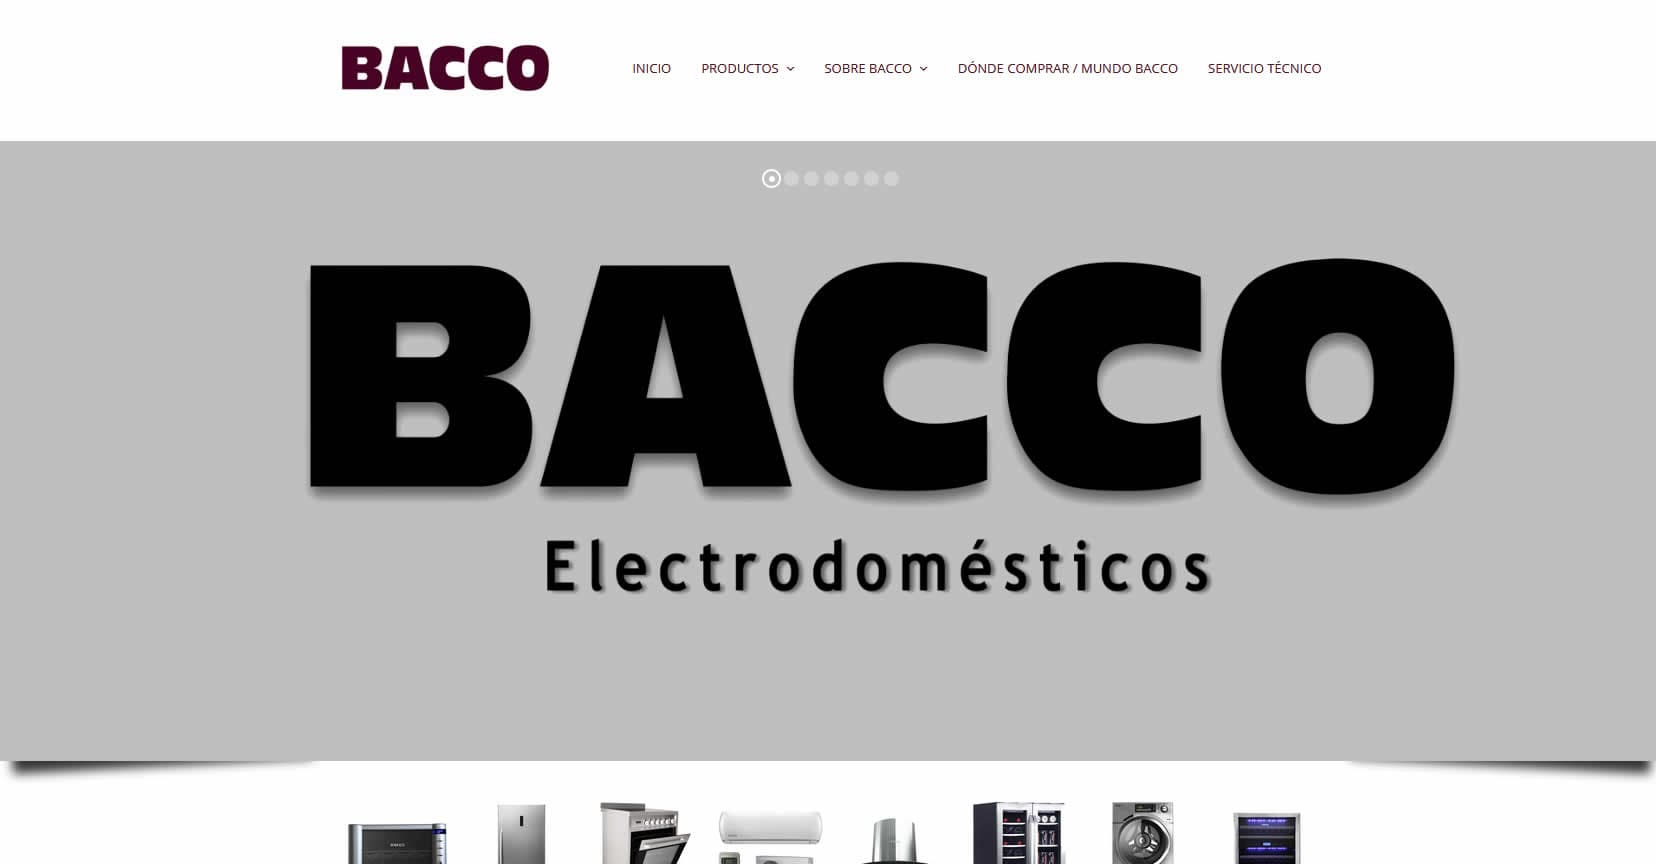 bacco.net.ve previa